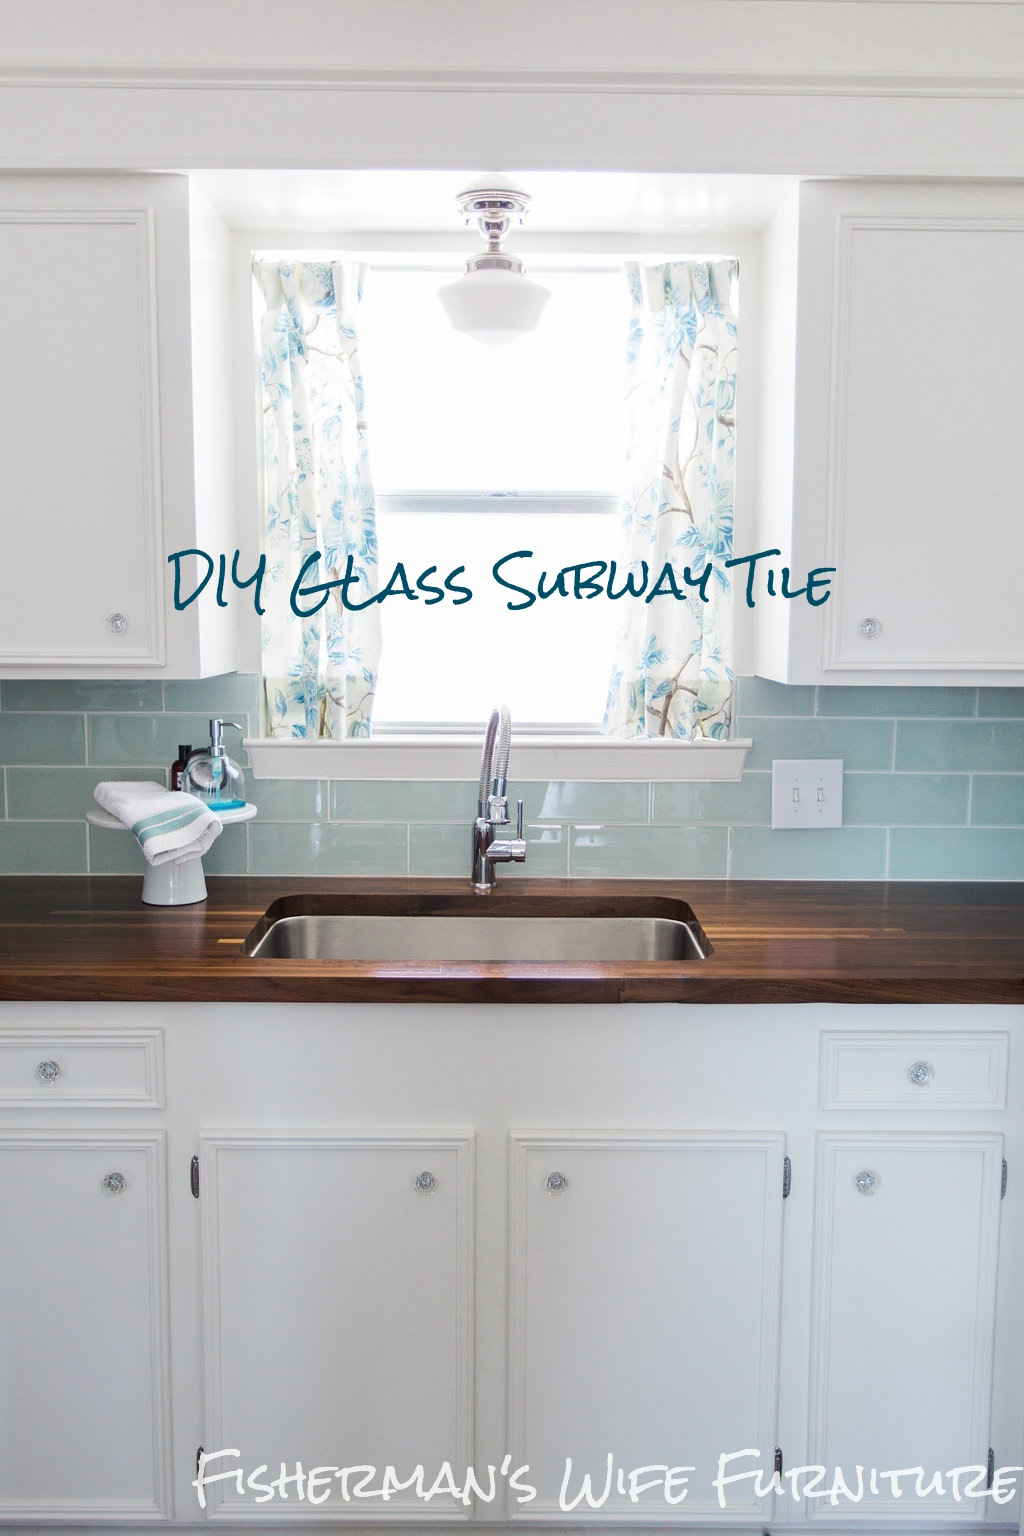 Fishermans wife furniture glass tile backsplash glass tile backsplash dailygadgetfo Choice Image